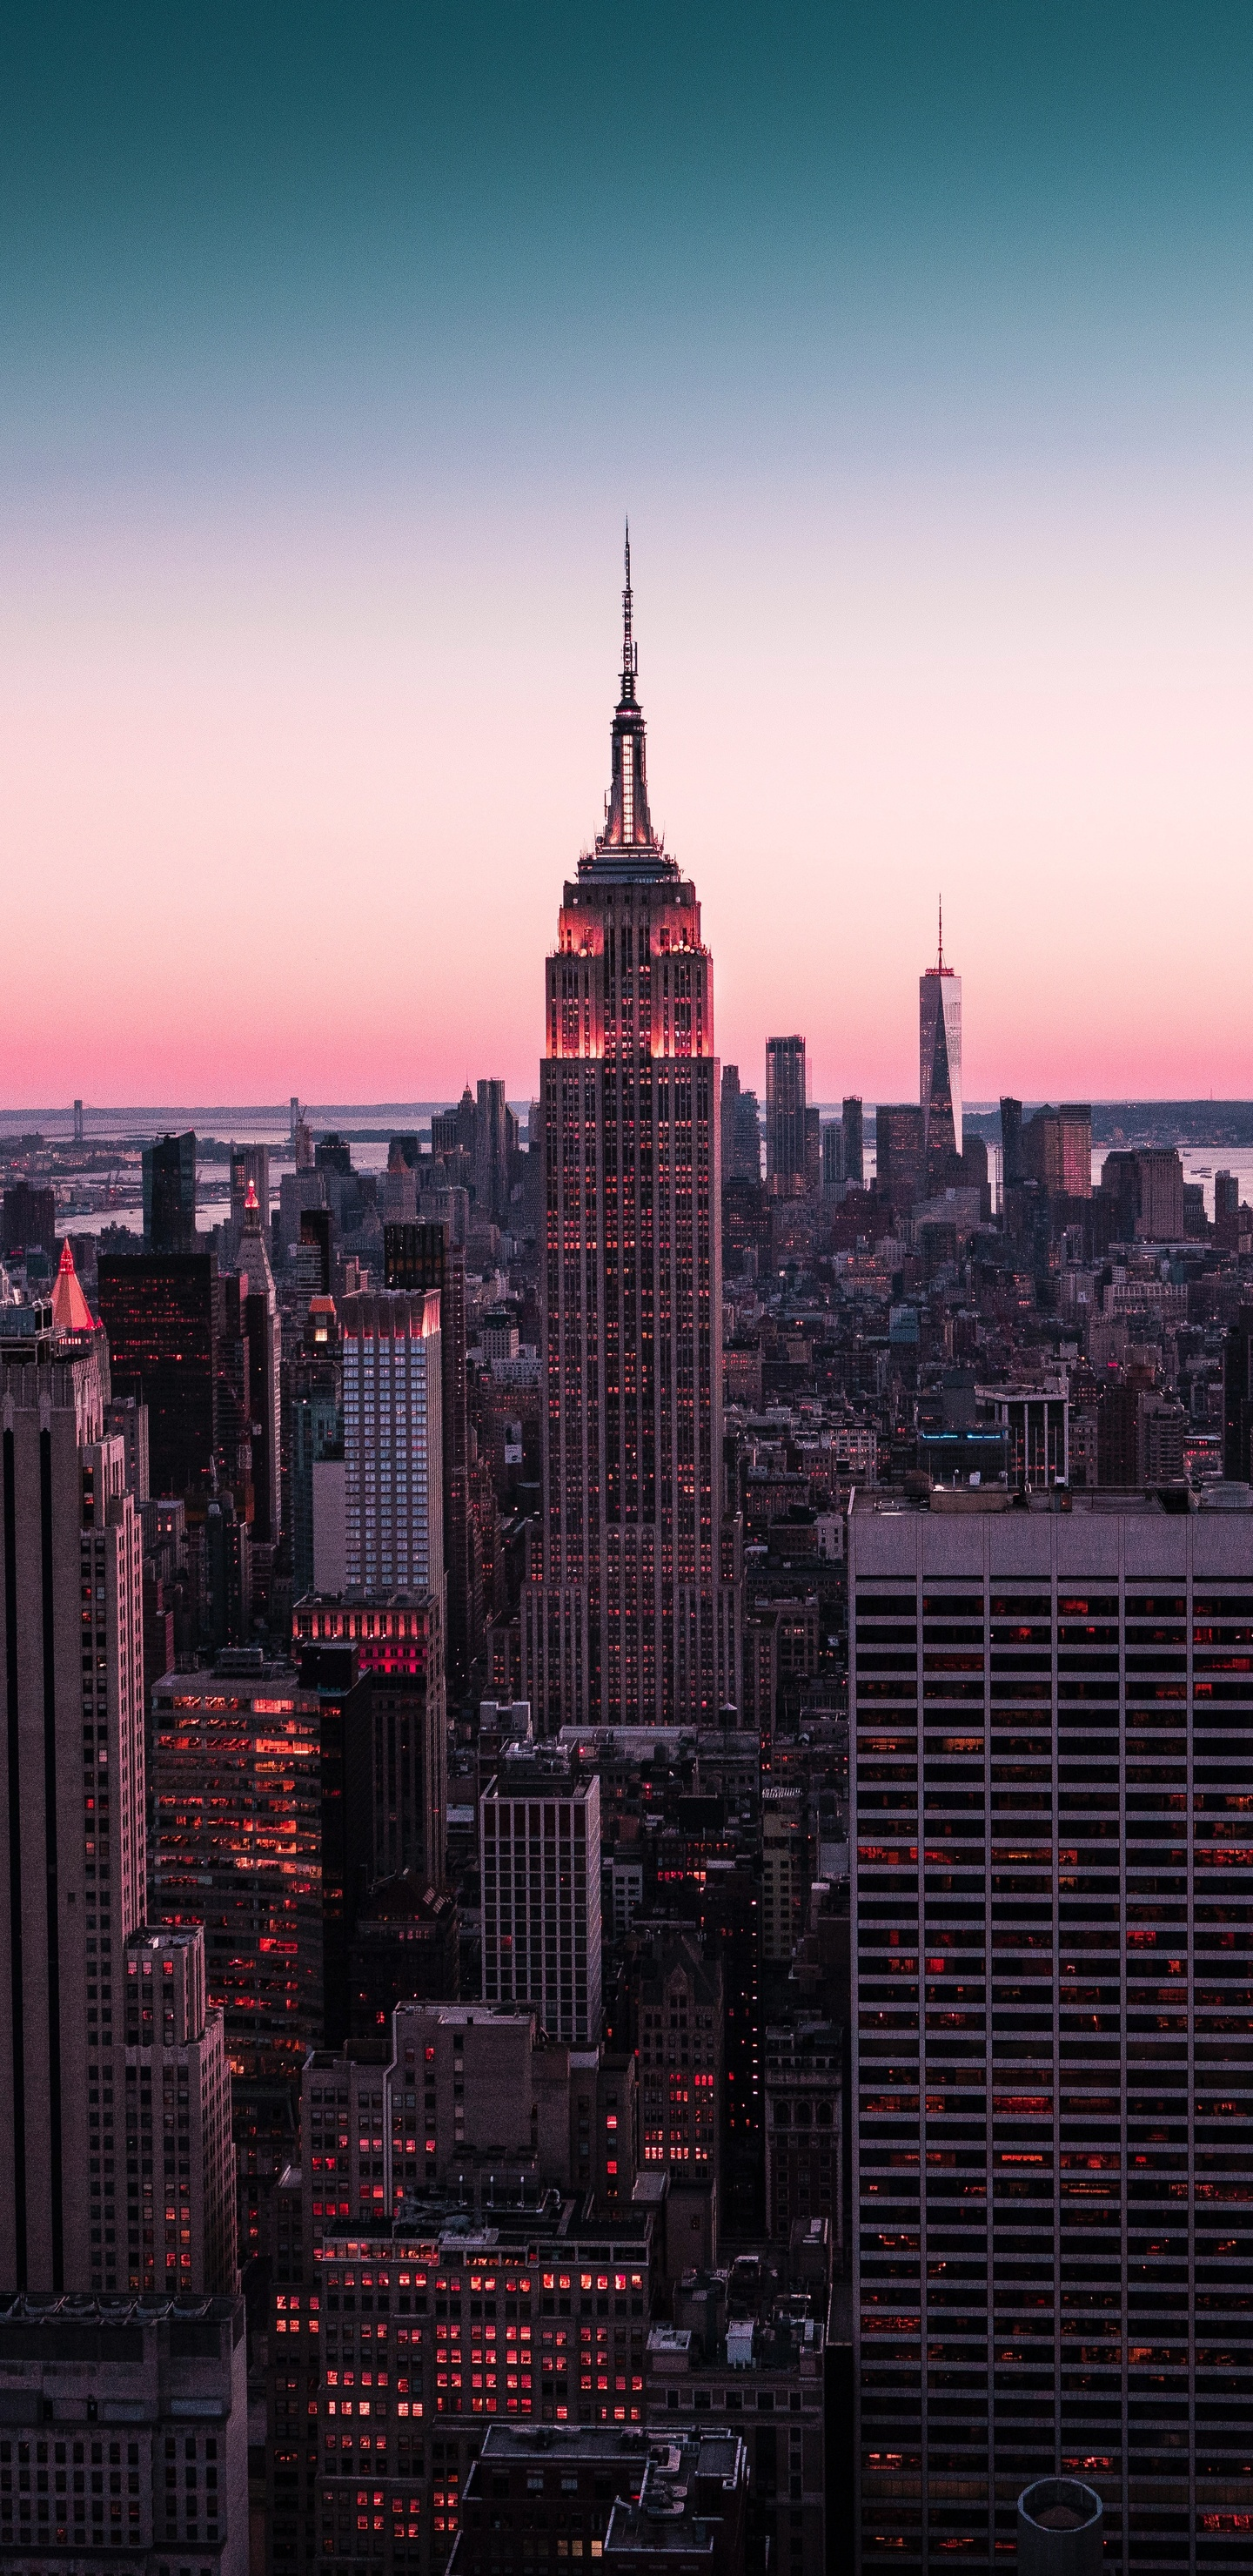 empire-state-building-new-york-8k-s9.jpg